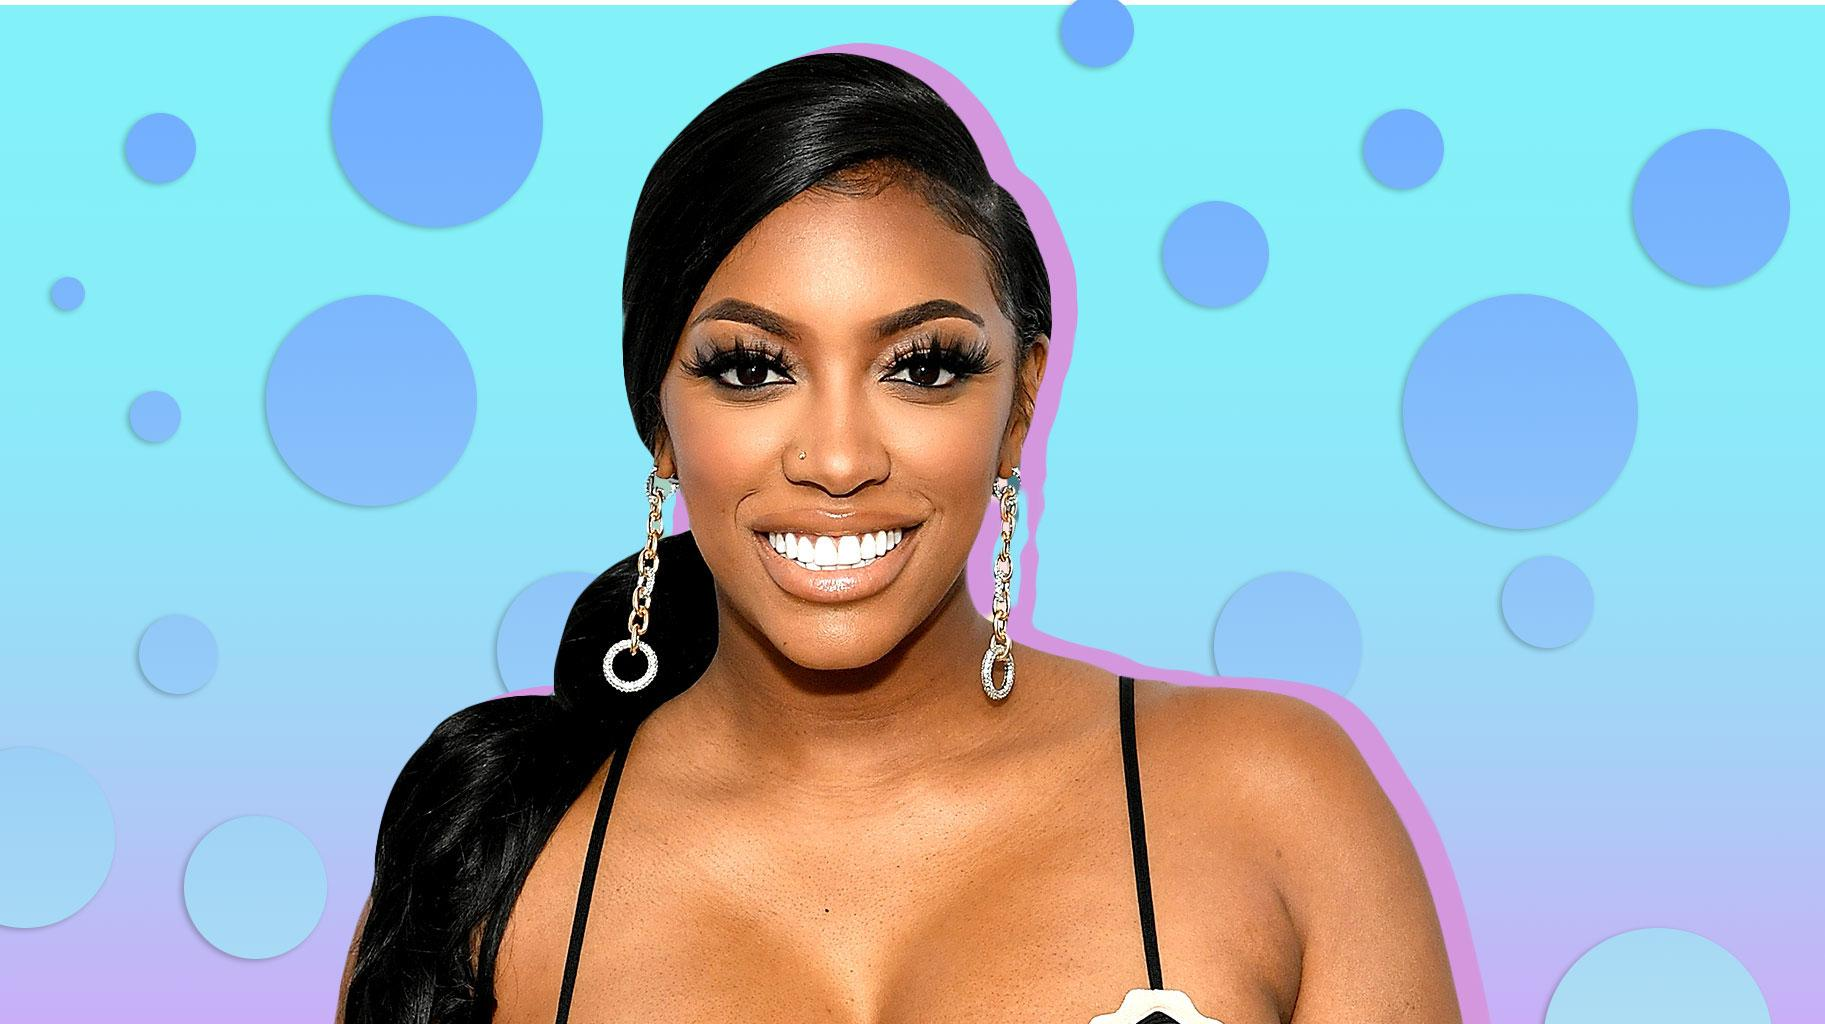 Porsha Williams' New Podcast Episode Is Out - Check It Out Here